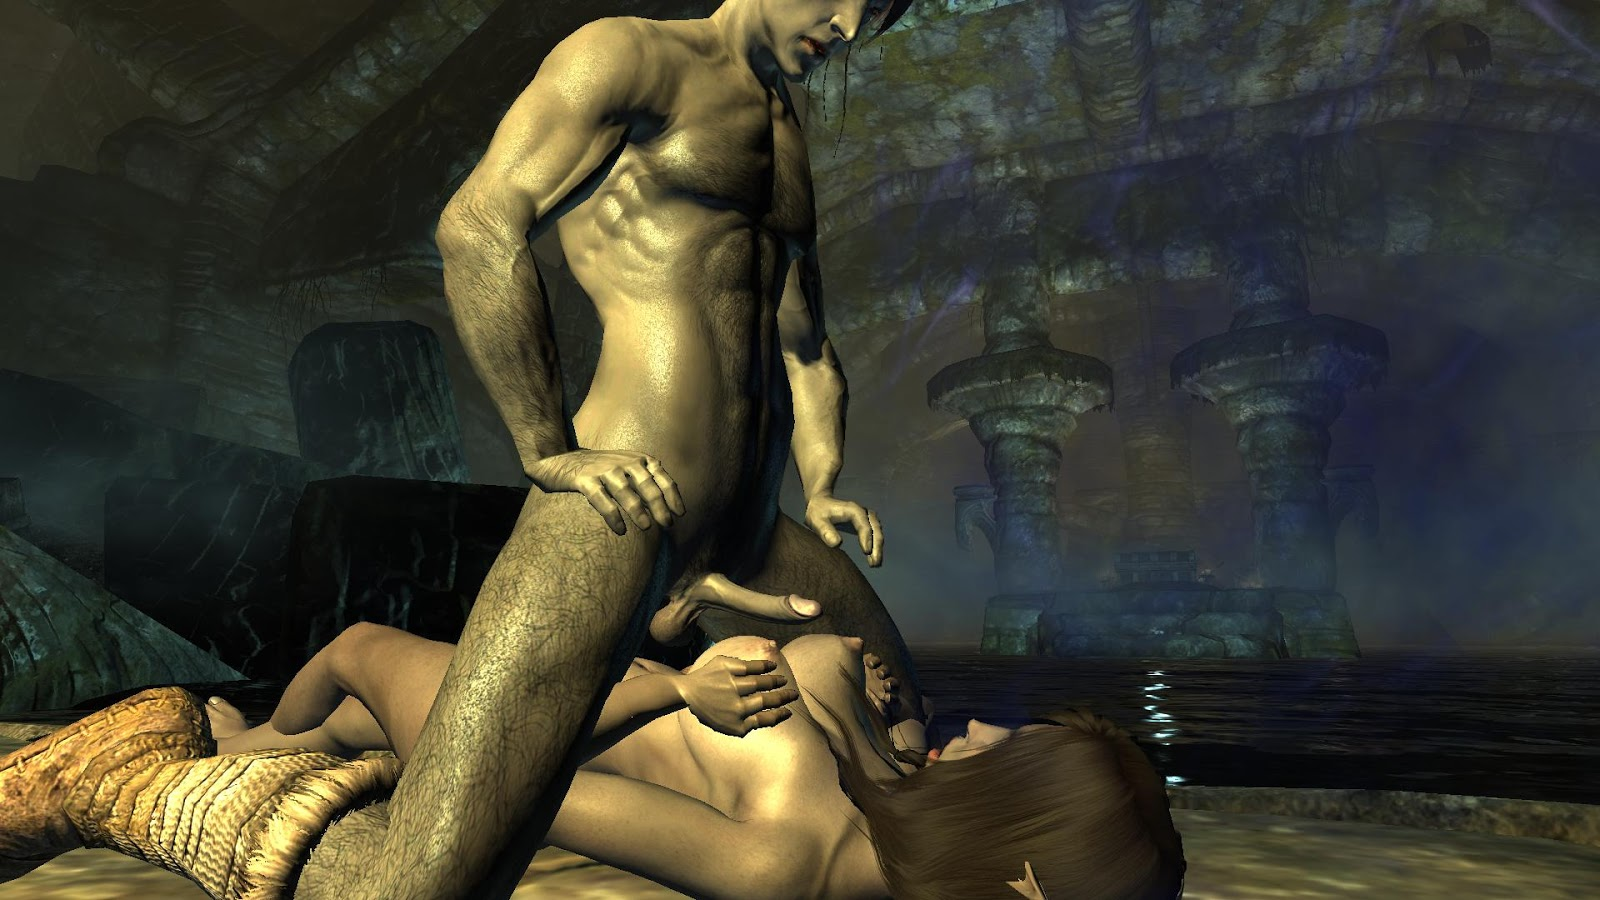 Skyrim hentai picture erotic videos